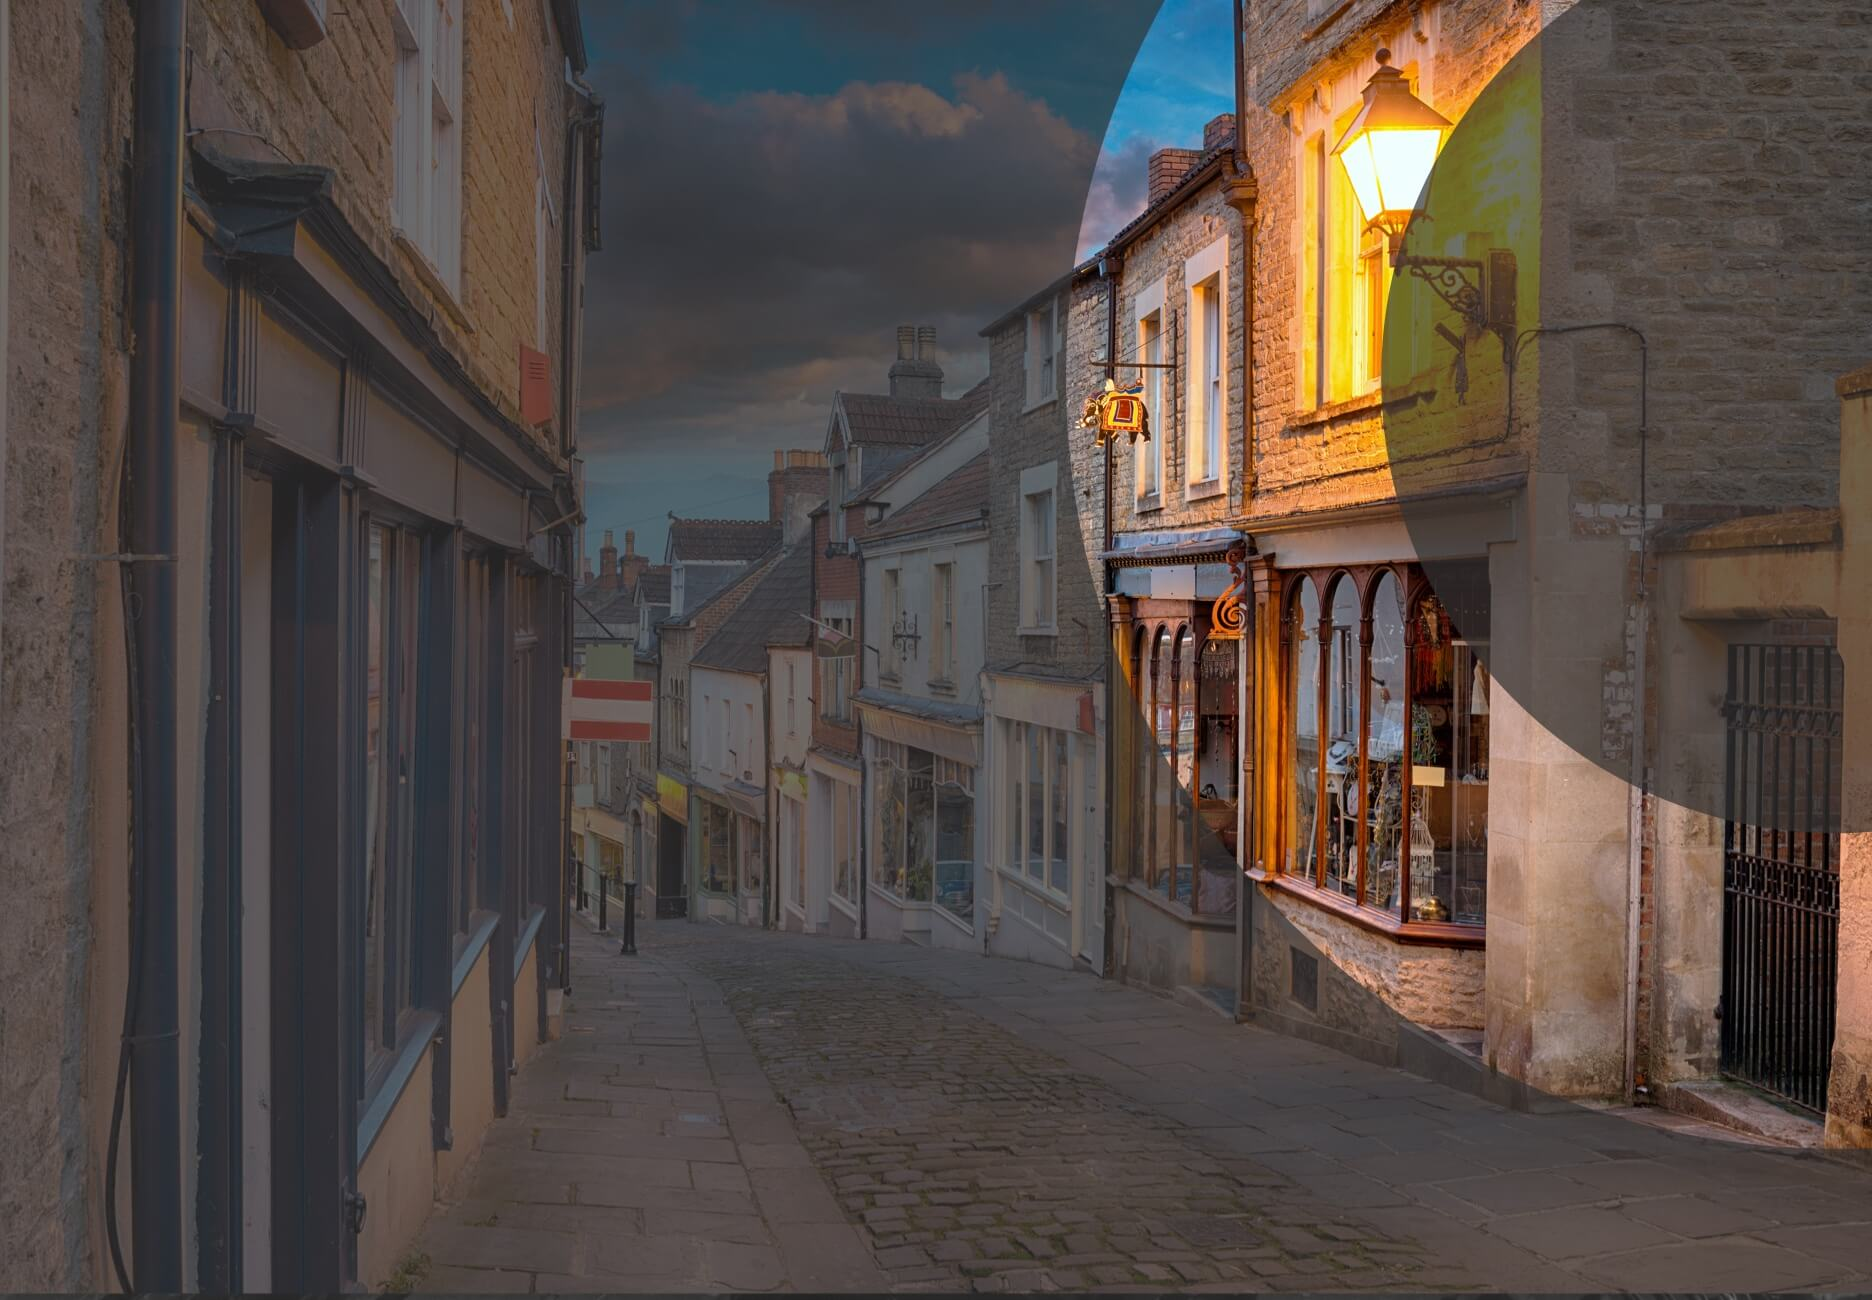 An empty town high street at dusk